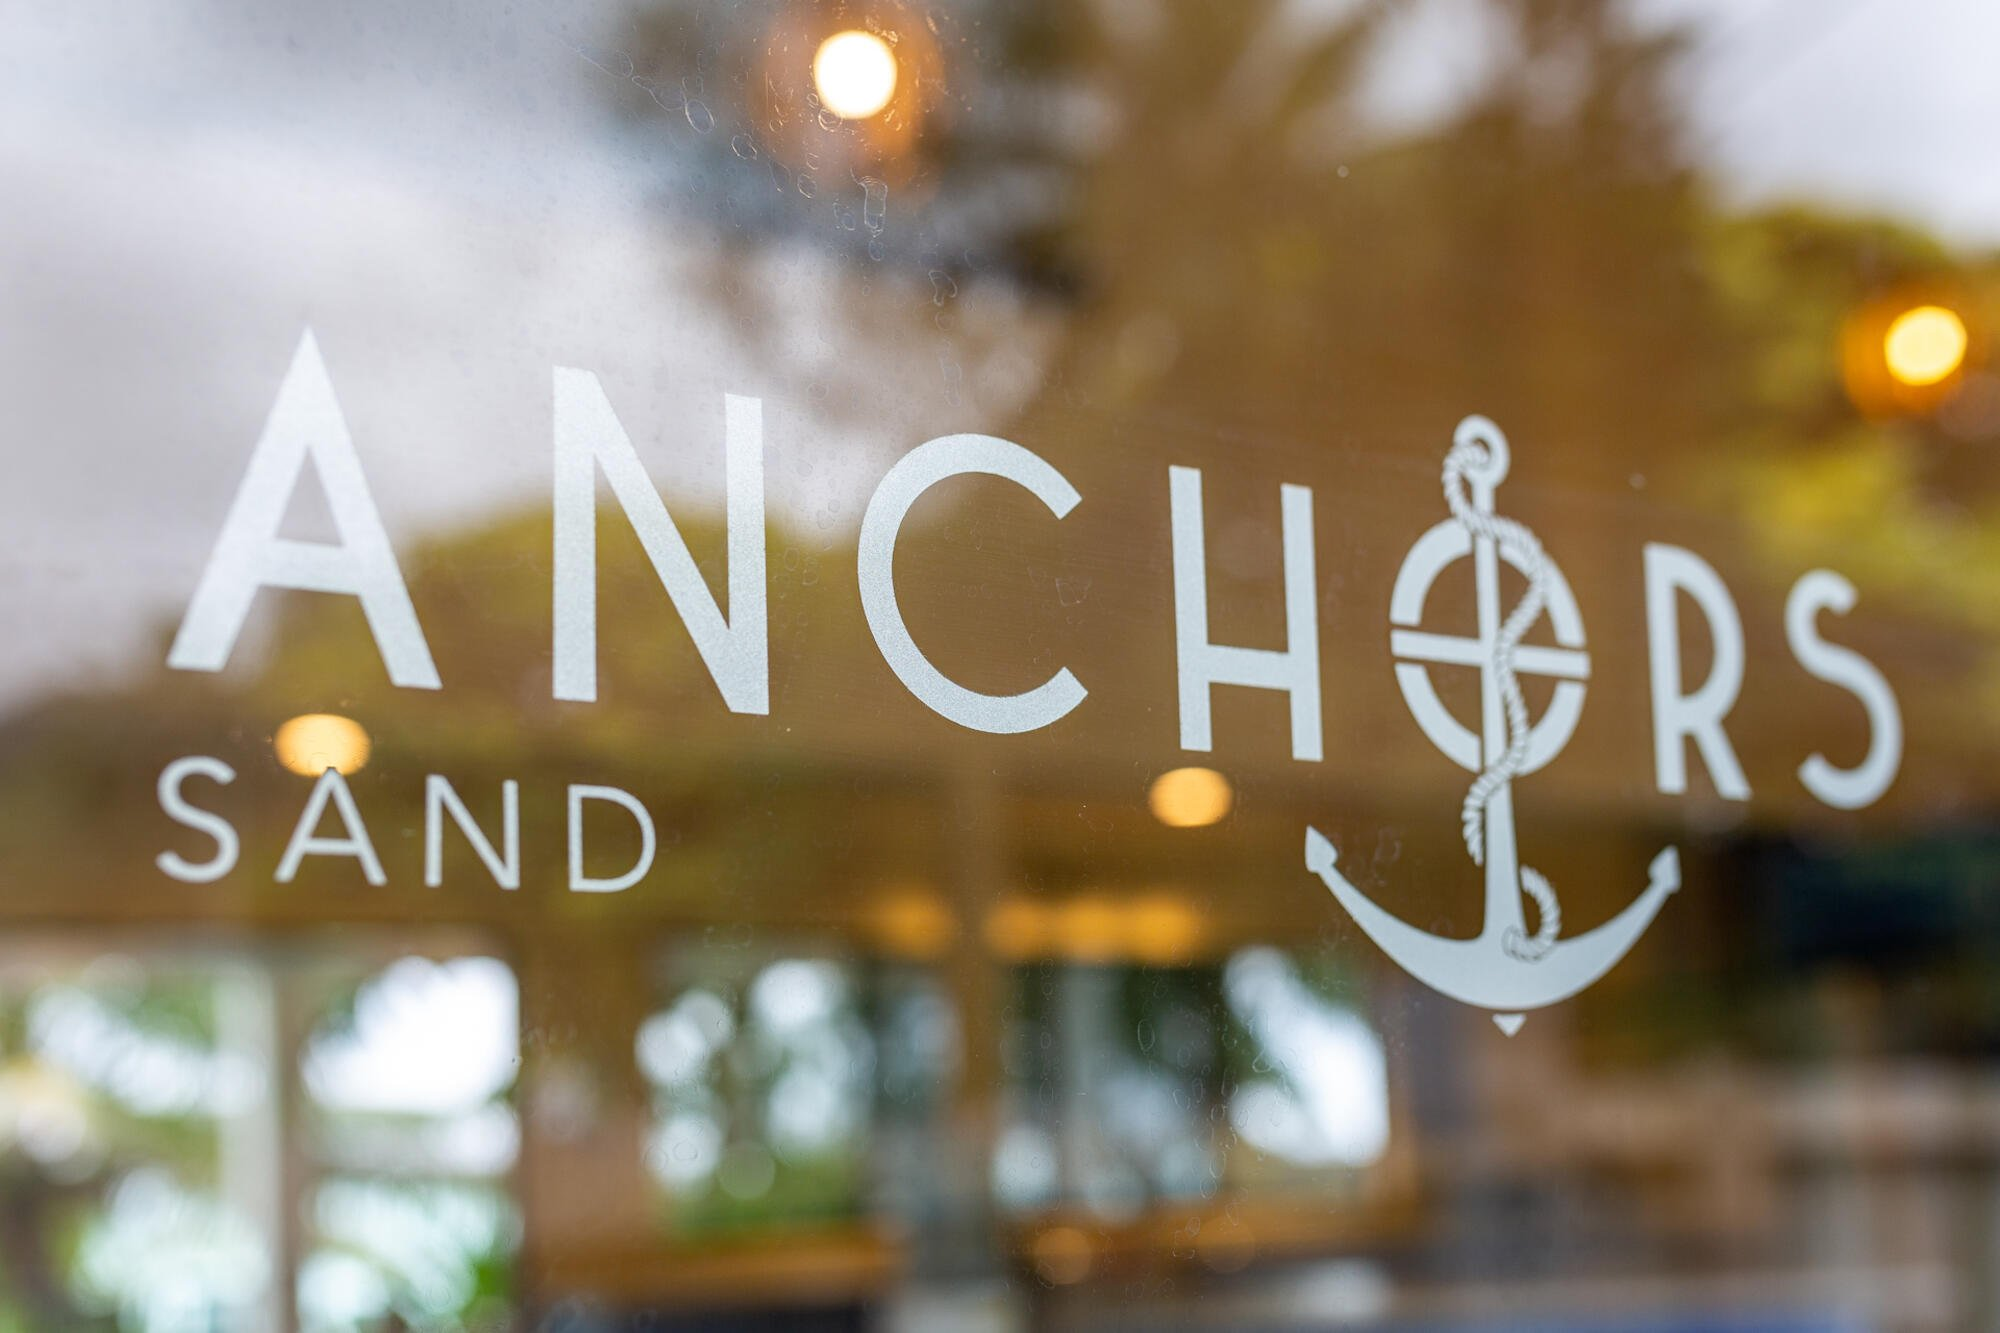 Anchors Sands